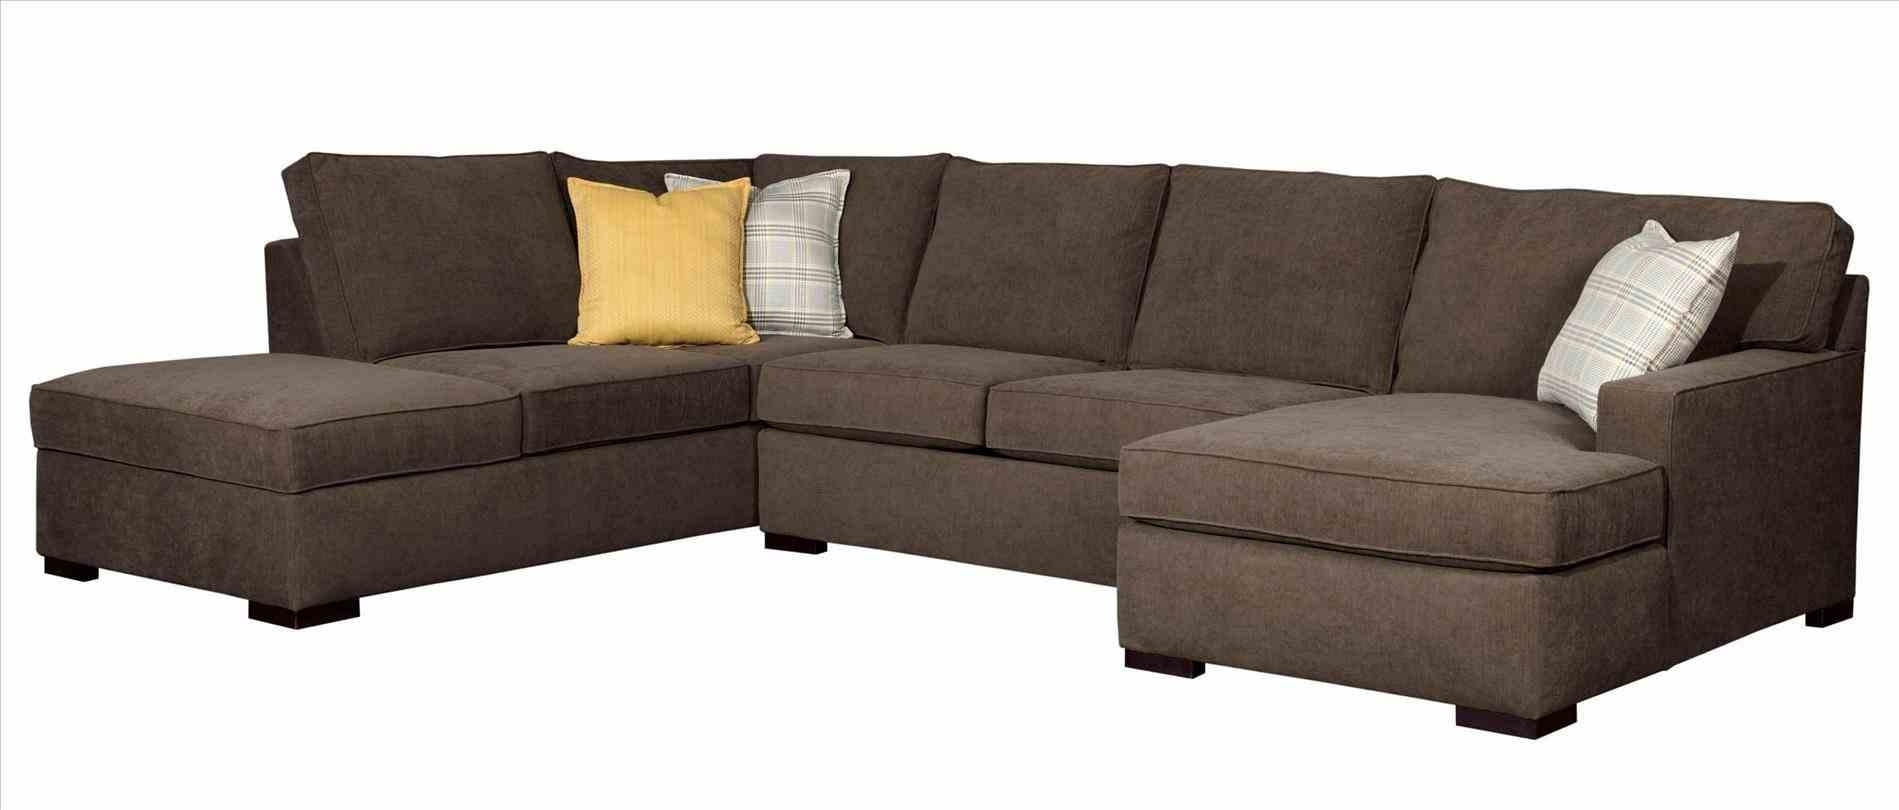 sofas by design des moines wall sofa bed 10 43 choices of homemakers sectional ideas